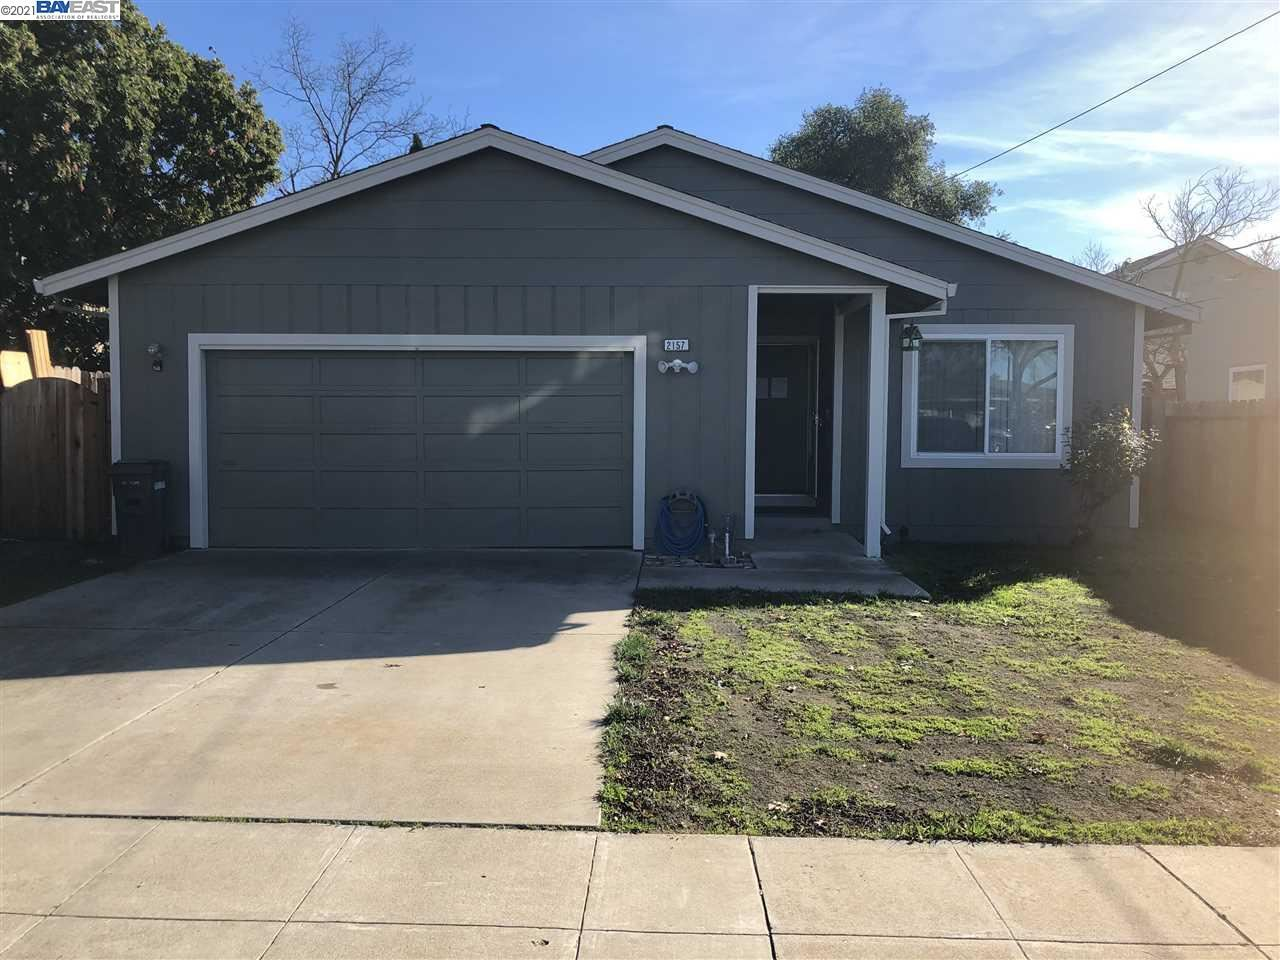 Photo for 2157 Park St, LIVERMORE, CA 94551 (MLS # 40934500)